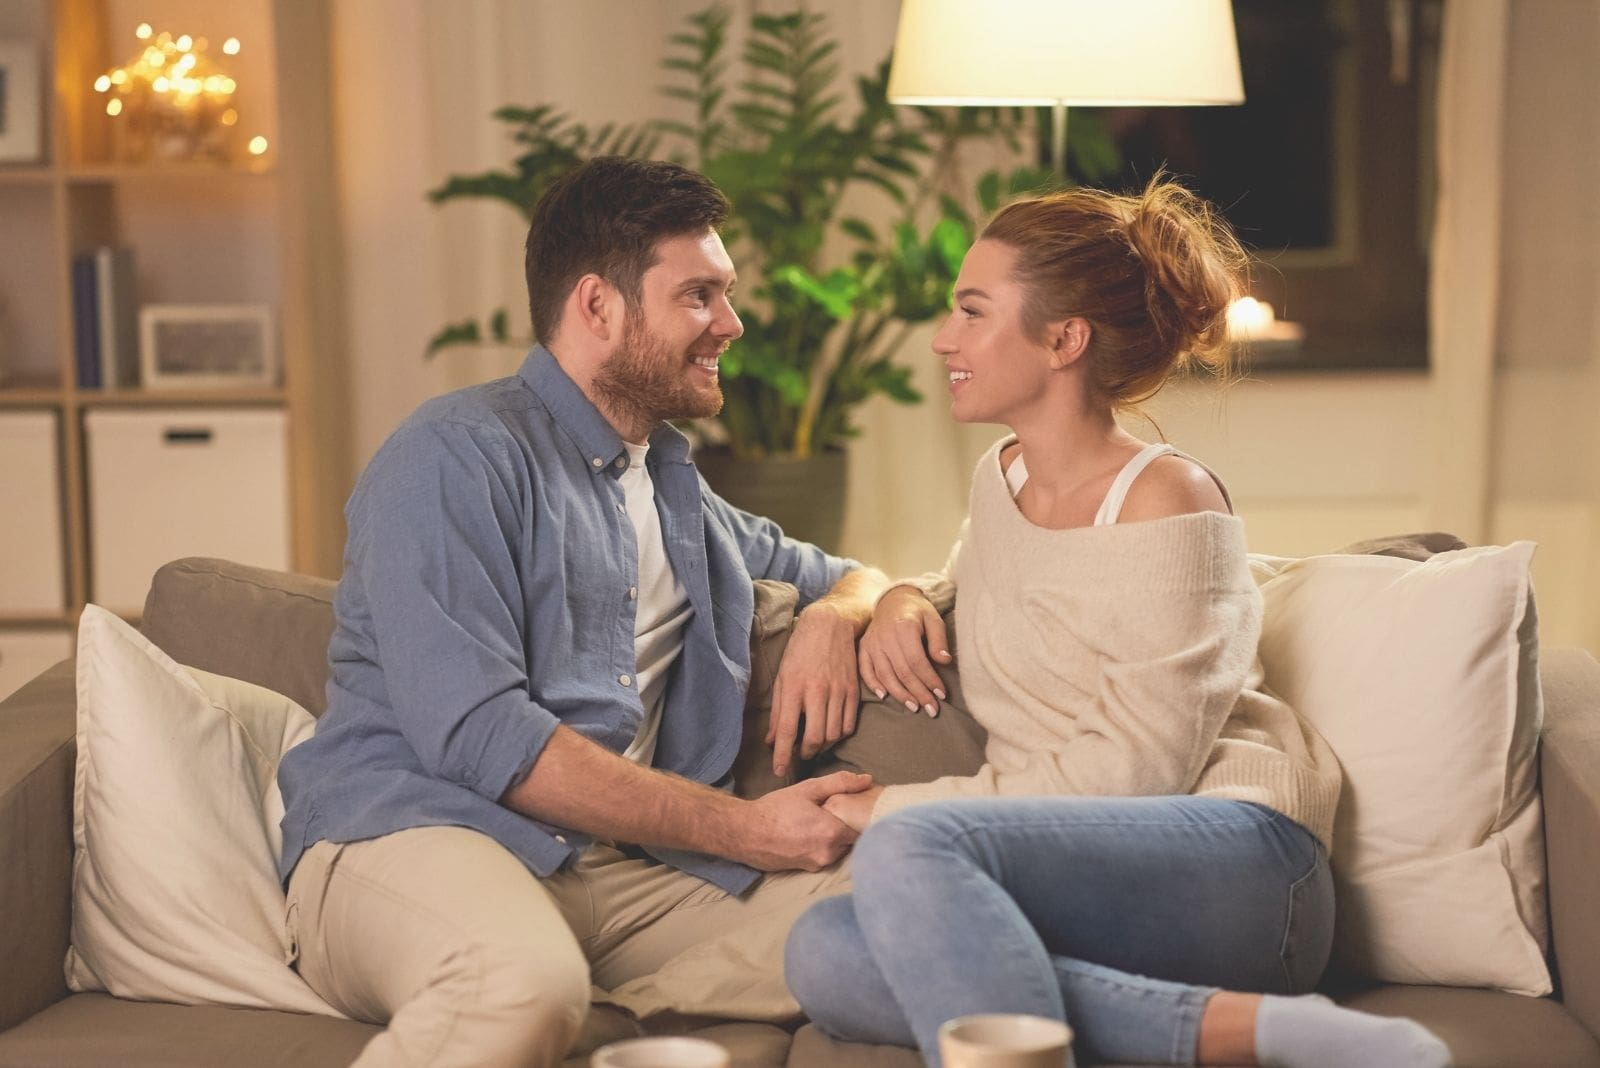 couple talking heart to heart inside the livingroom sitting in one couch